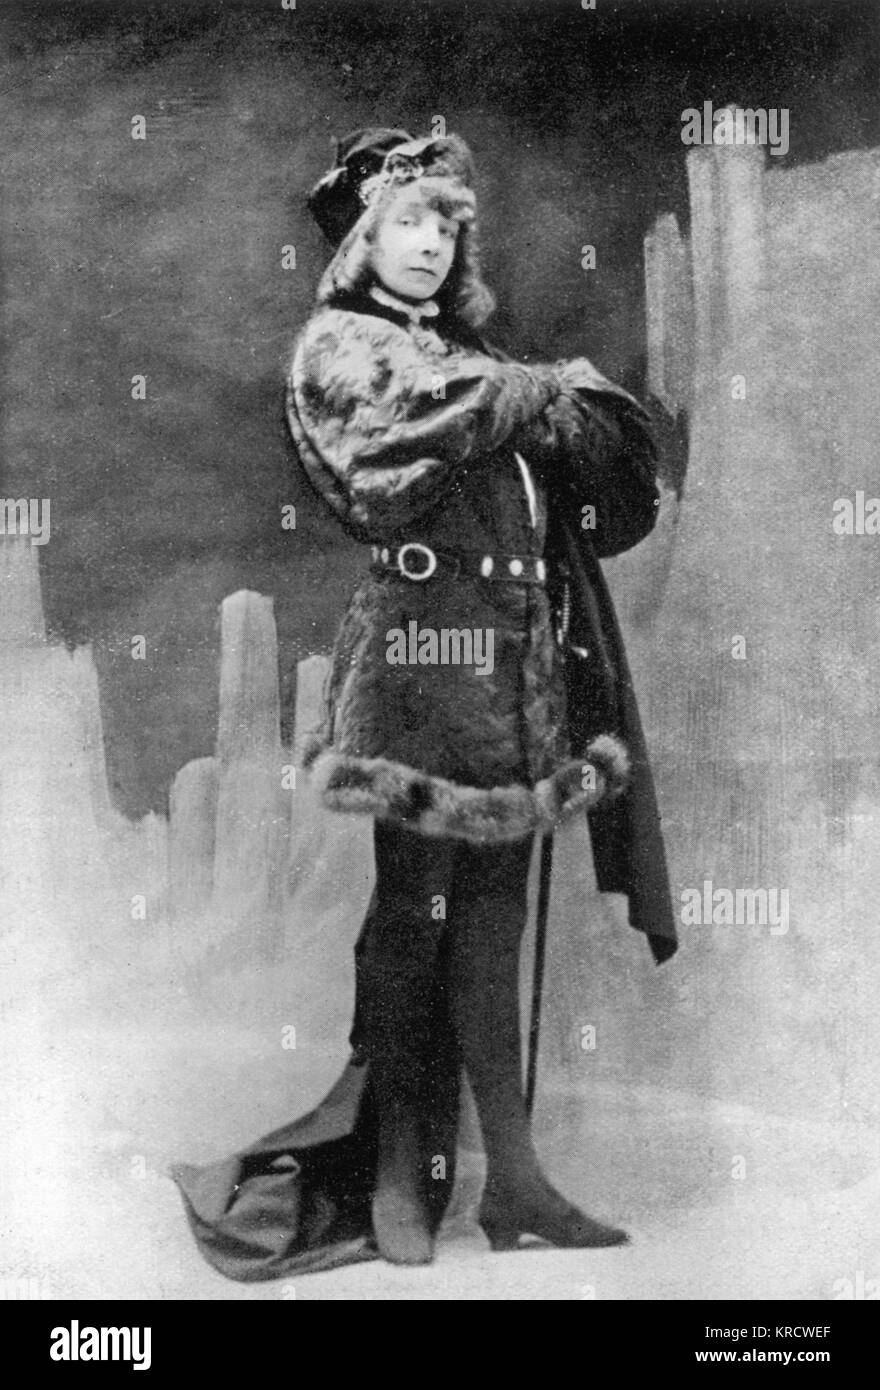 SARAH BERNHARDT English actress in the male role of Hamlet in Shakespeare's play of the same name Date: 1844 - 1923 Stock Photo